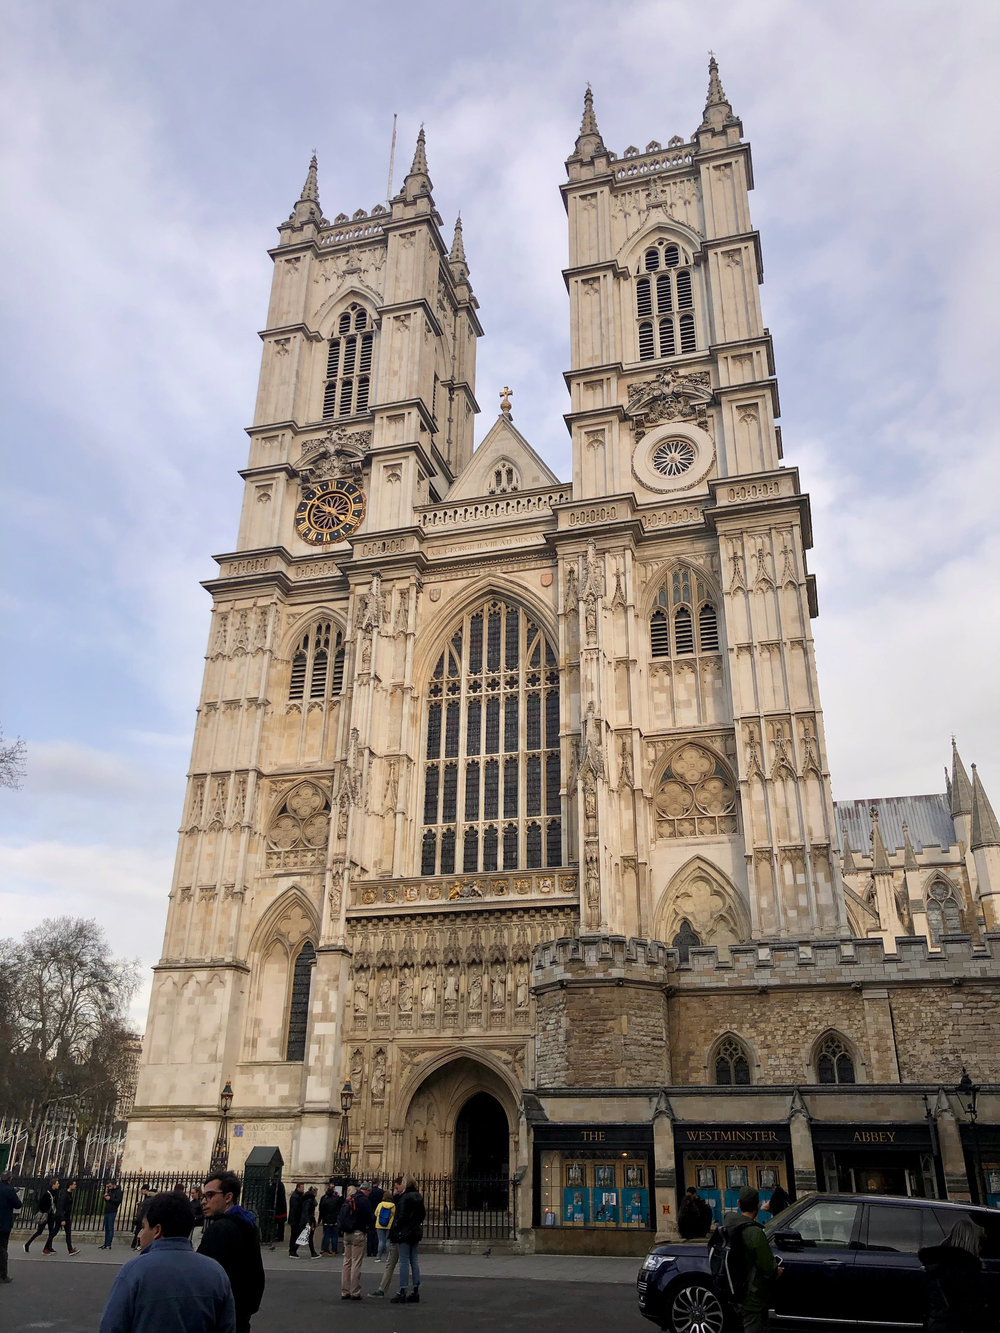 Where my meeting was, and where I met Justine wasn't far from Westminster Abbey, so it seemed like the obvious first stop.